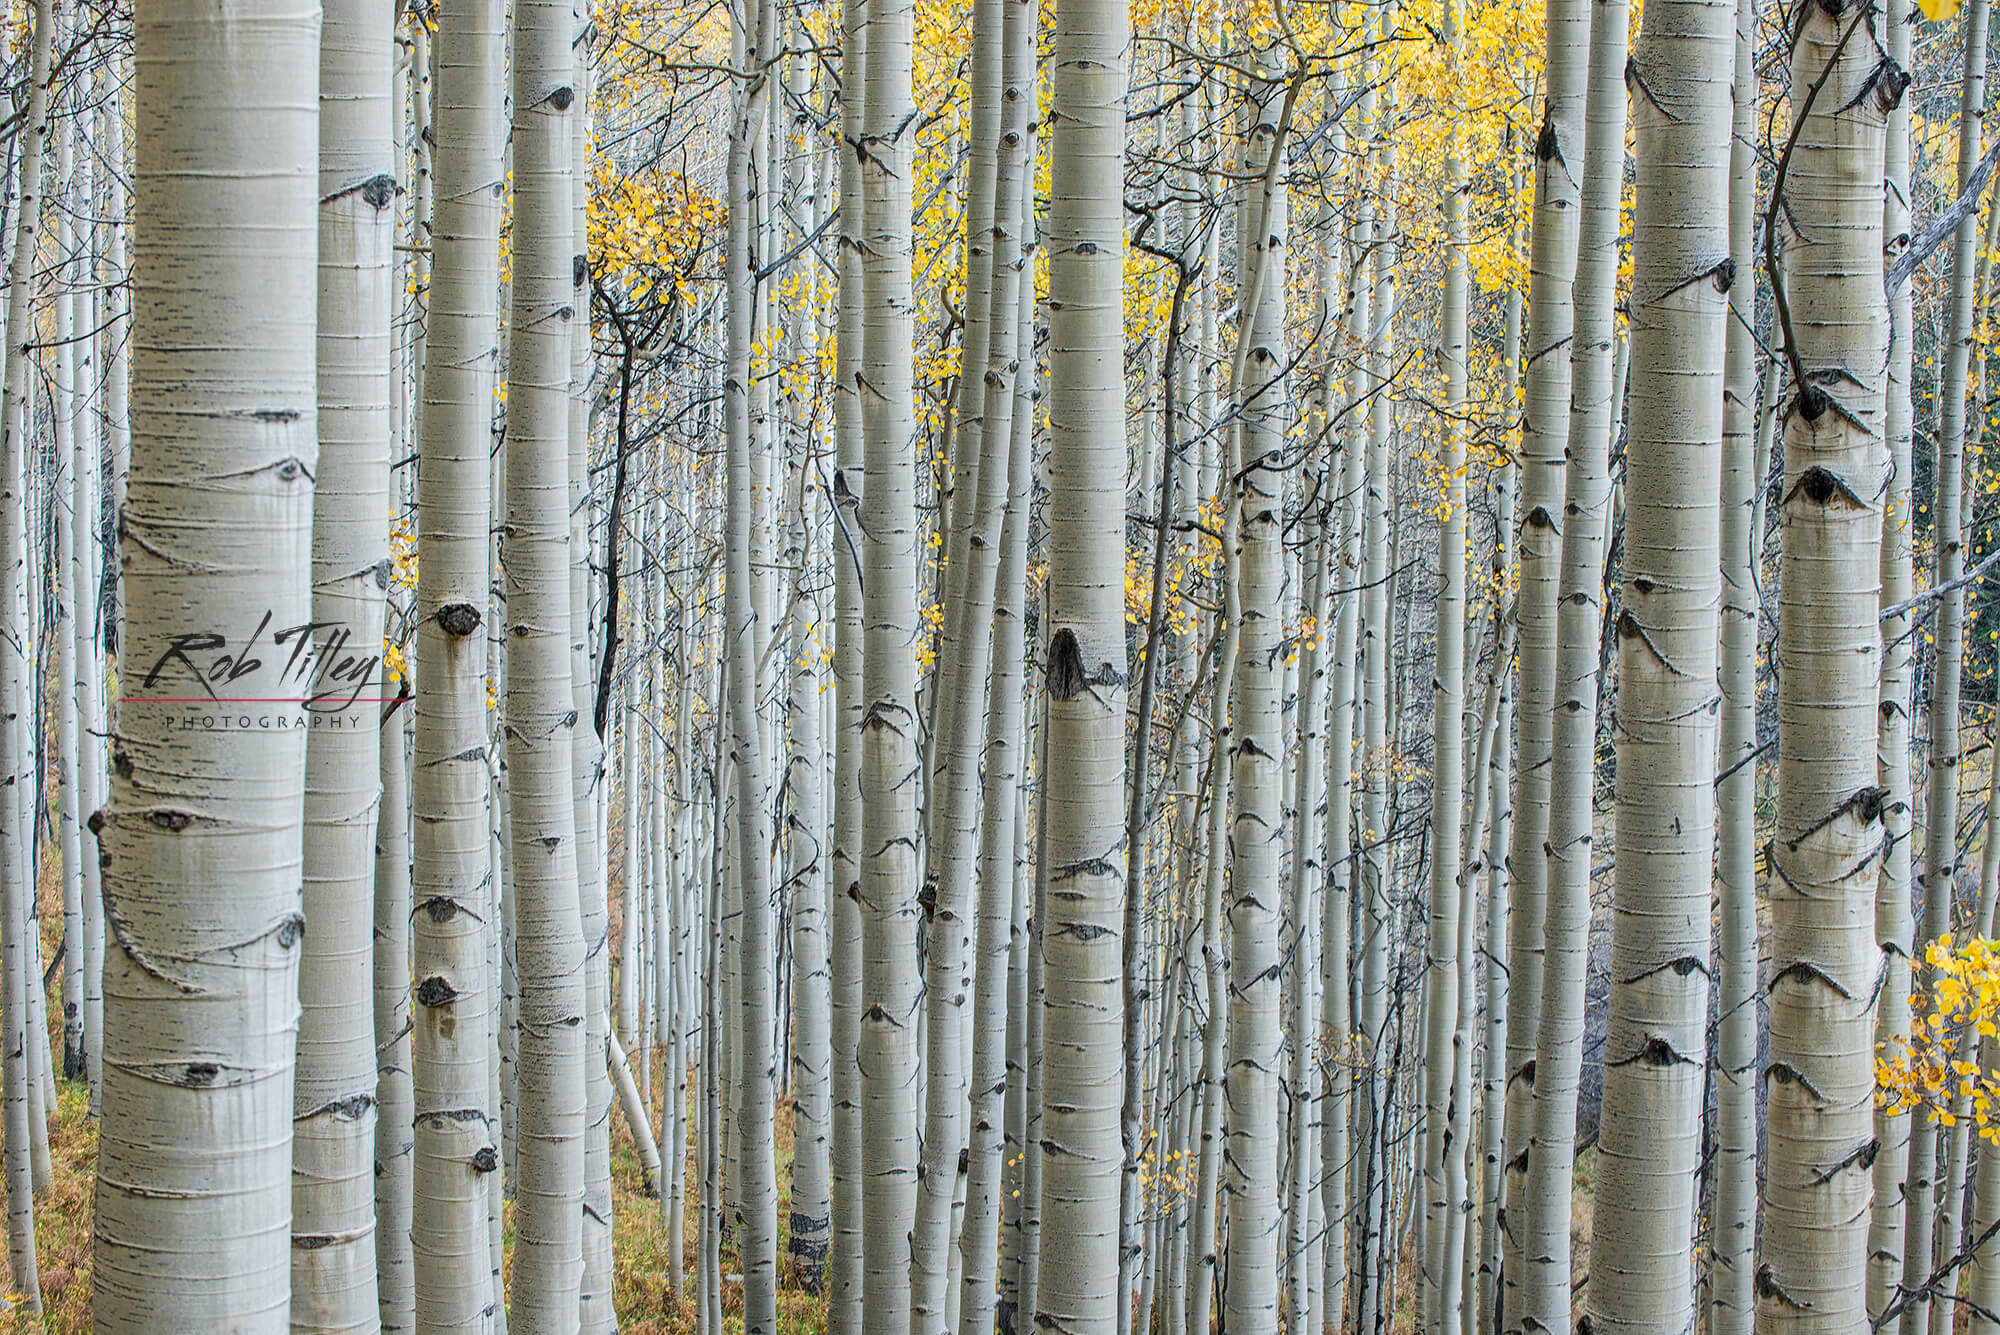 Aspen Trunks IV.jpg